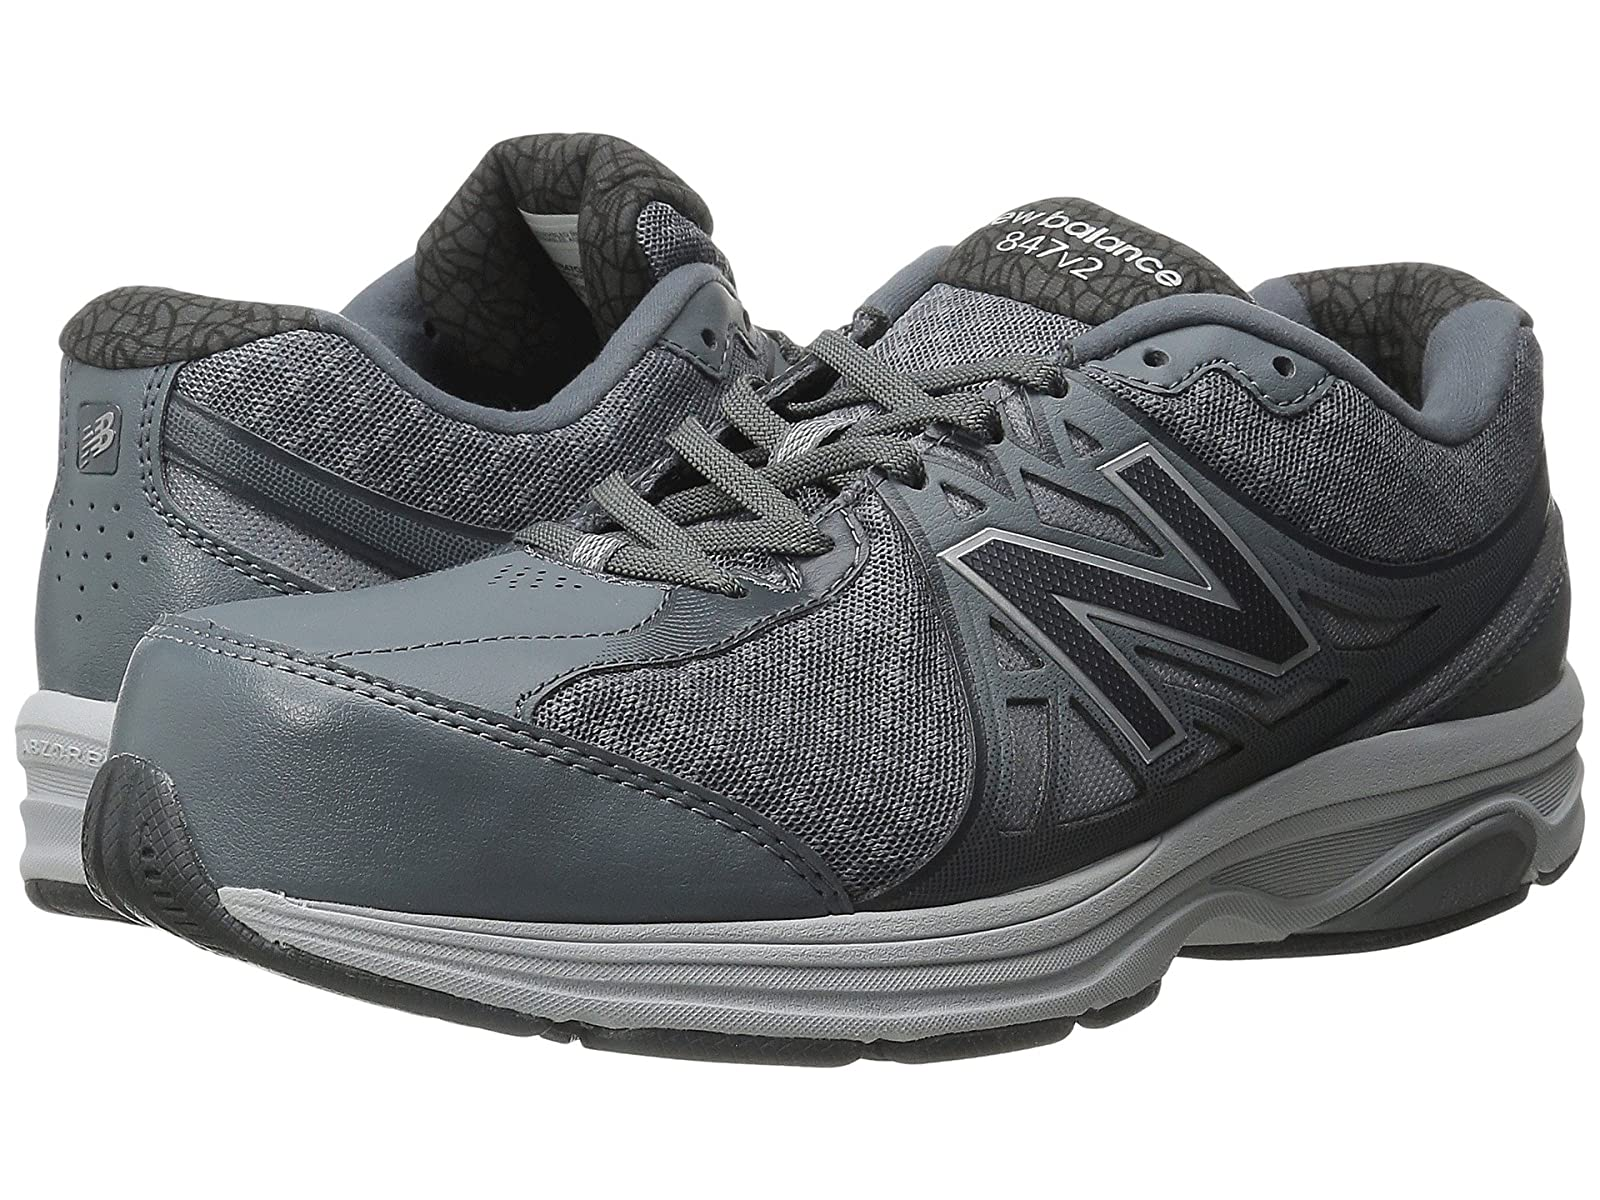 New Balance MW847v2Cheap and distinctive eye-catching shoes